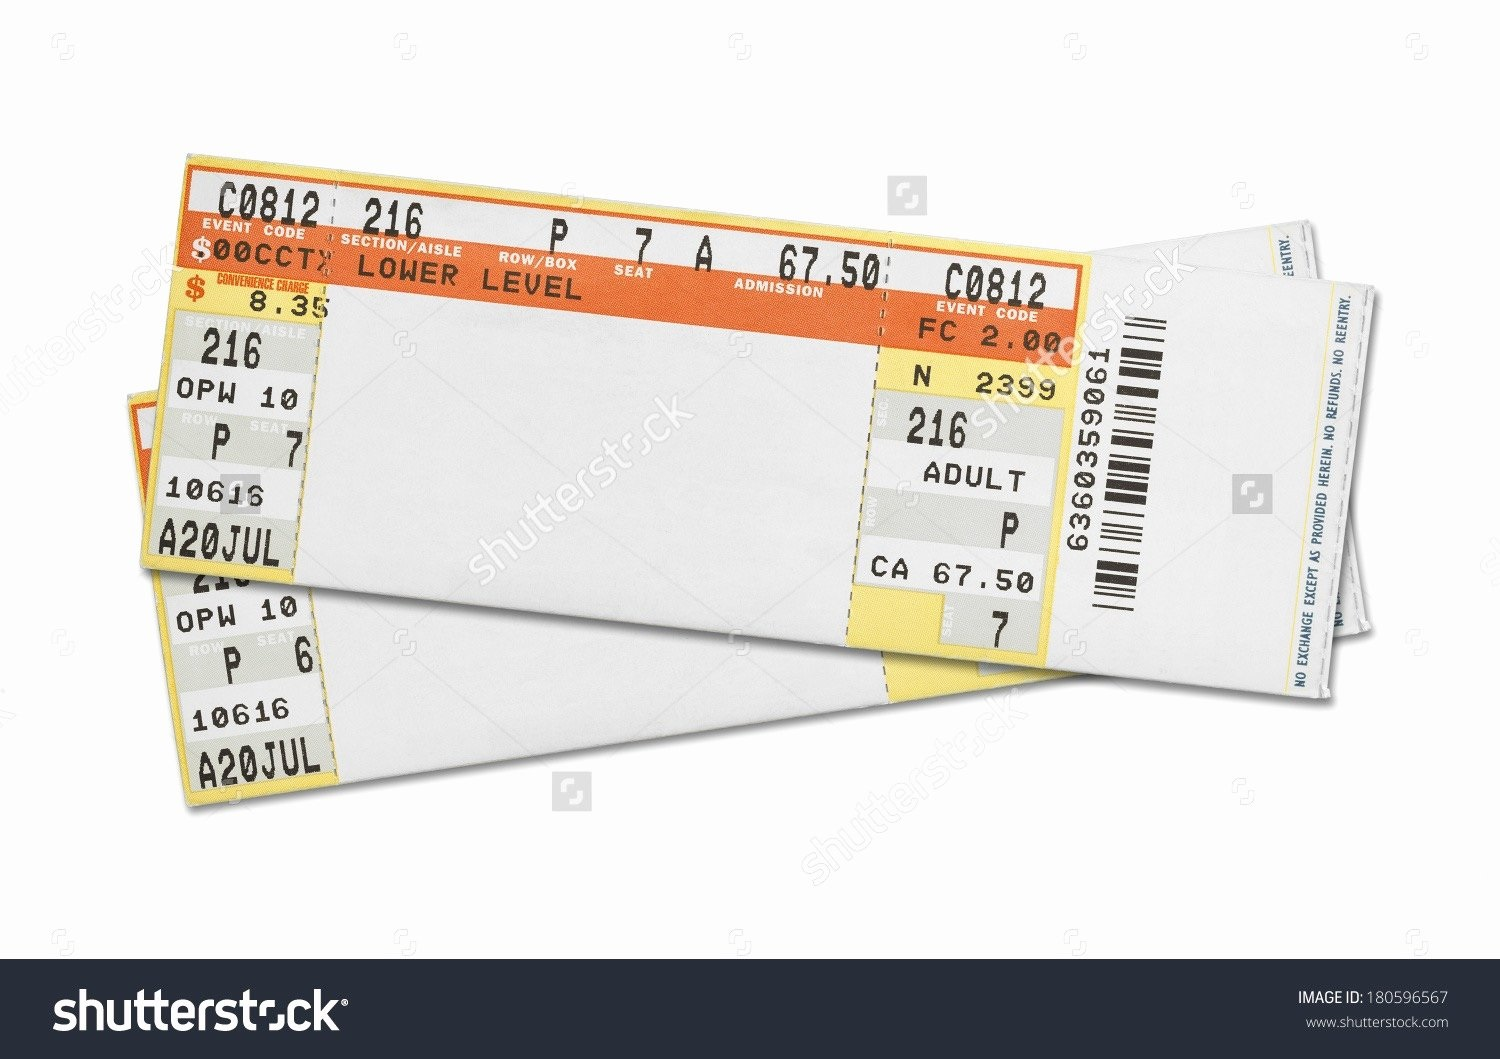 004 Striking Free Concert Ticket Printable Highest Clarity  Template For GiftFull